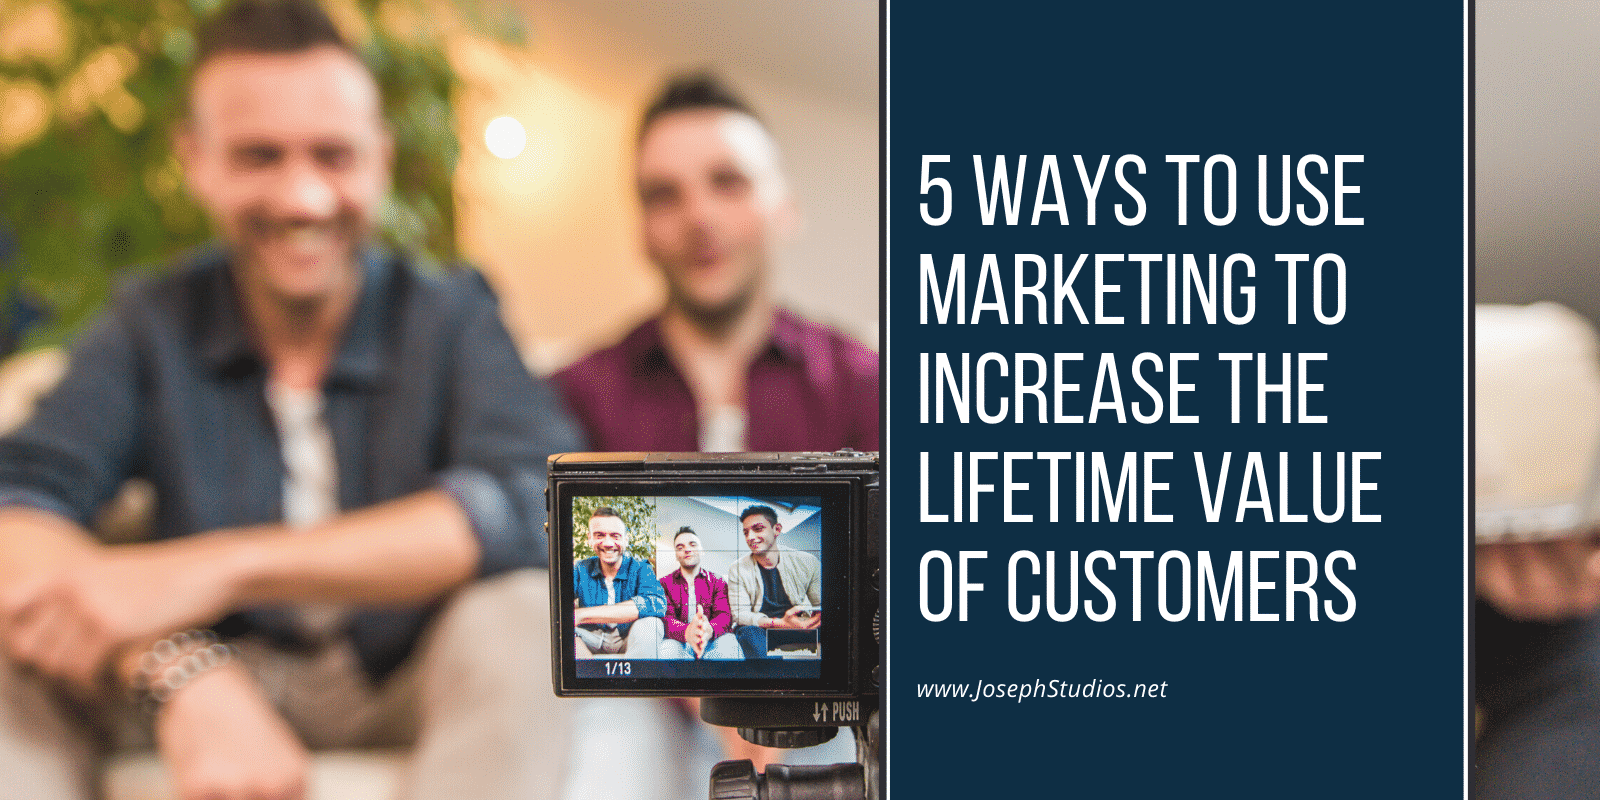 5 Ways To Use Marketing To Increase The Lifetime Value Of Customers